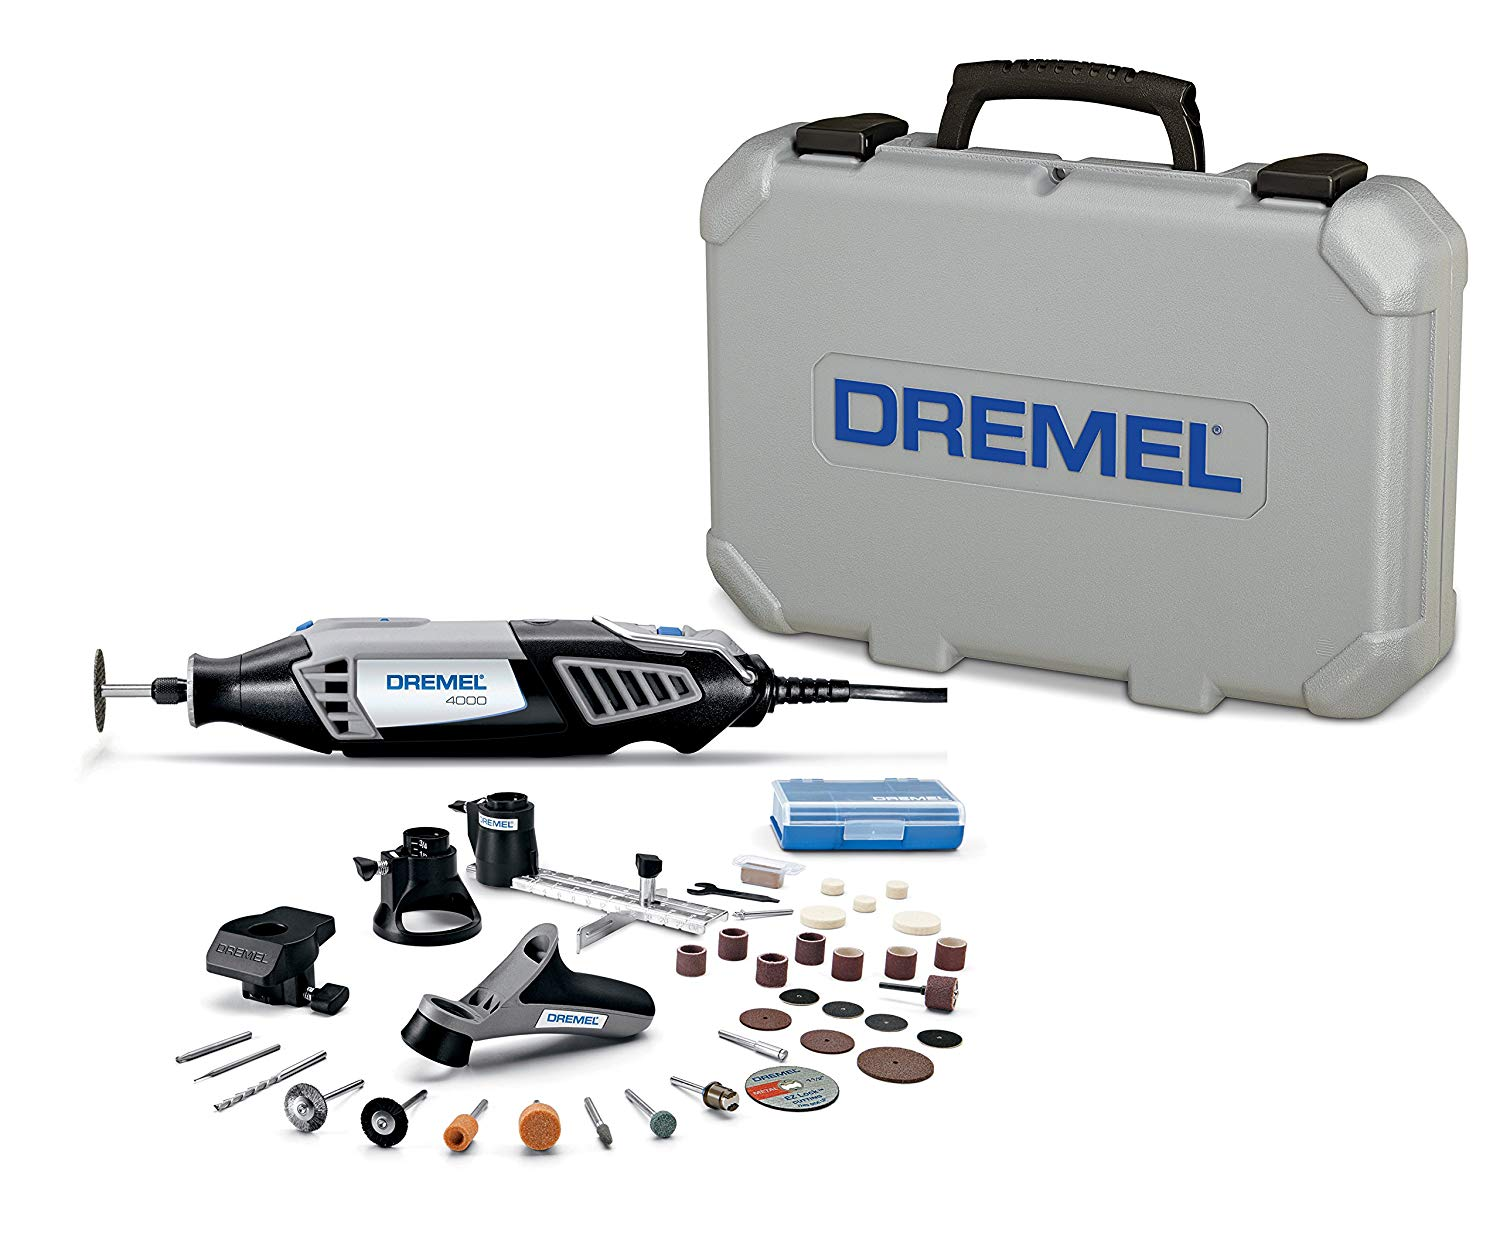 dremel 4000 reviews